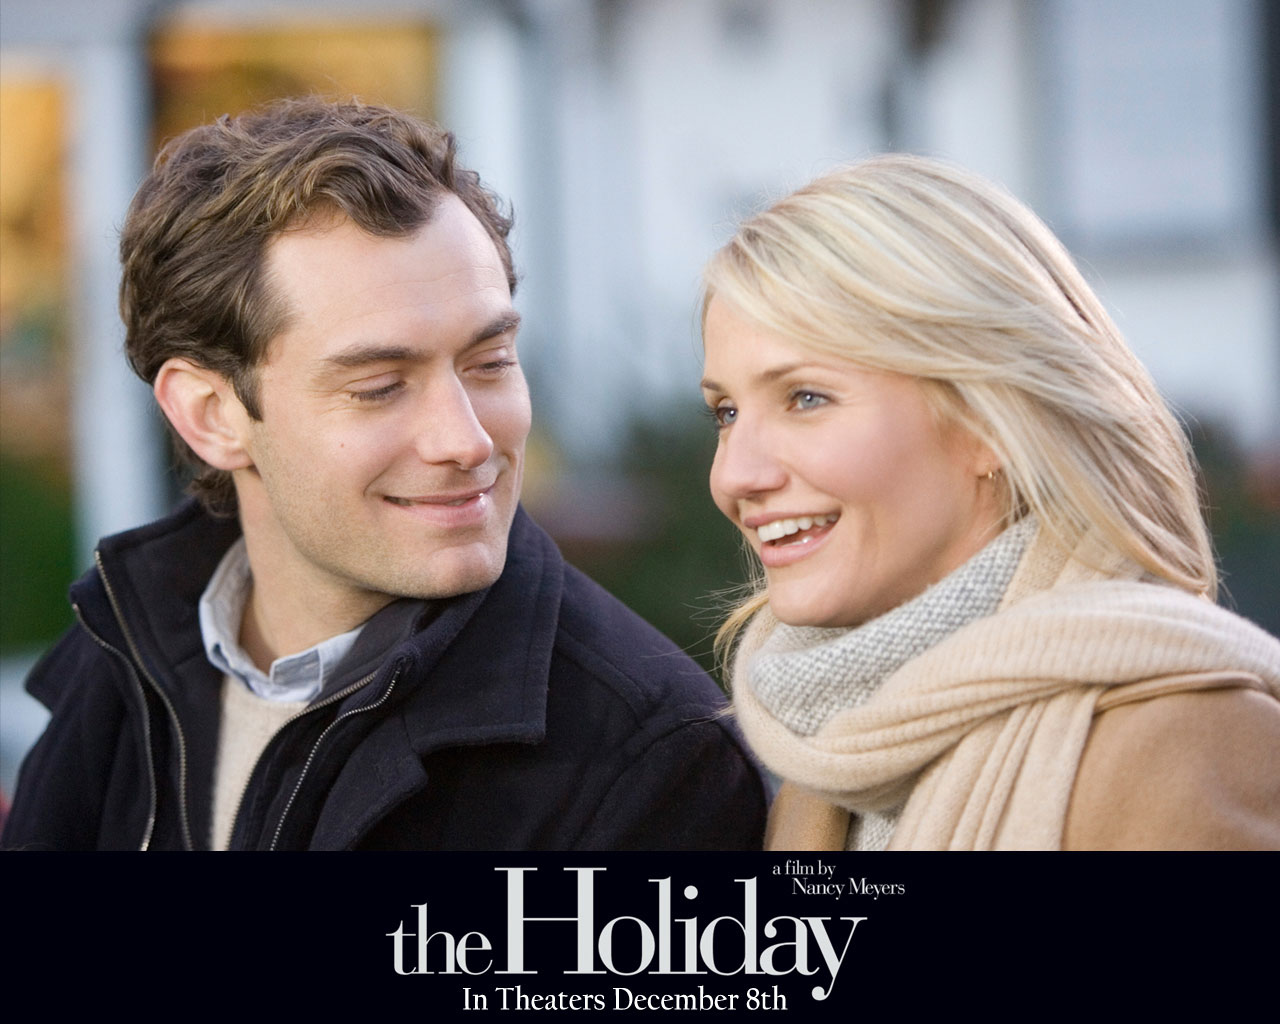 Cameron_Diaz_in_The_Holiday_Wallpaper_1_1280